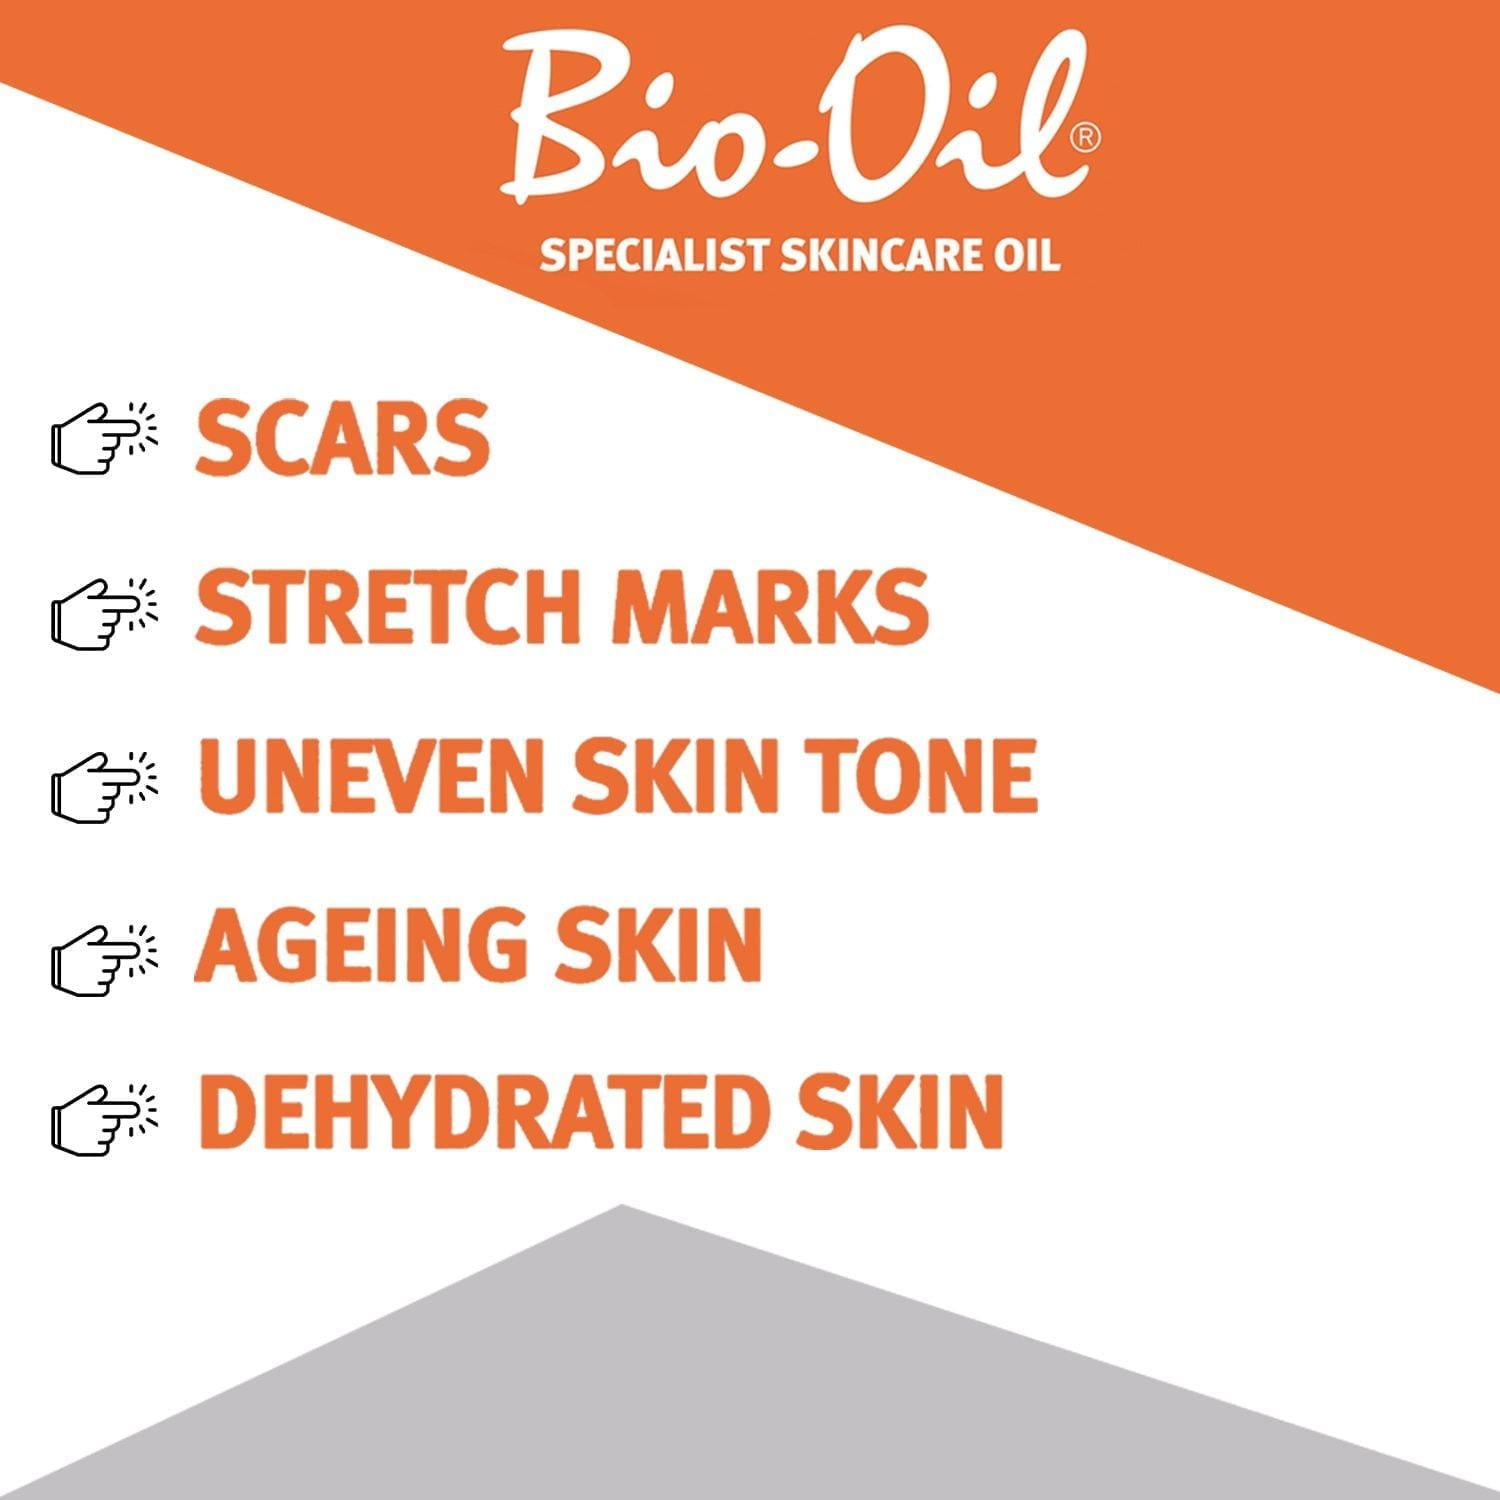 Bio-Oil Specialist Skincare Oil - features